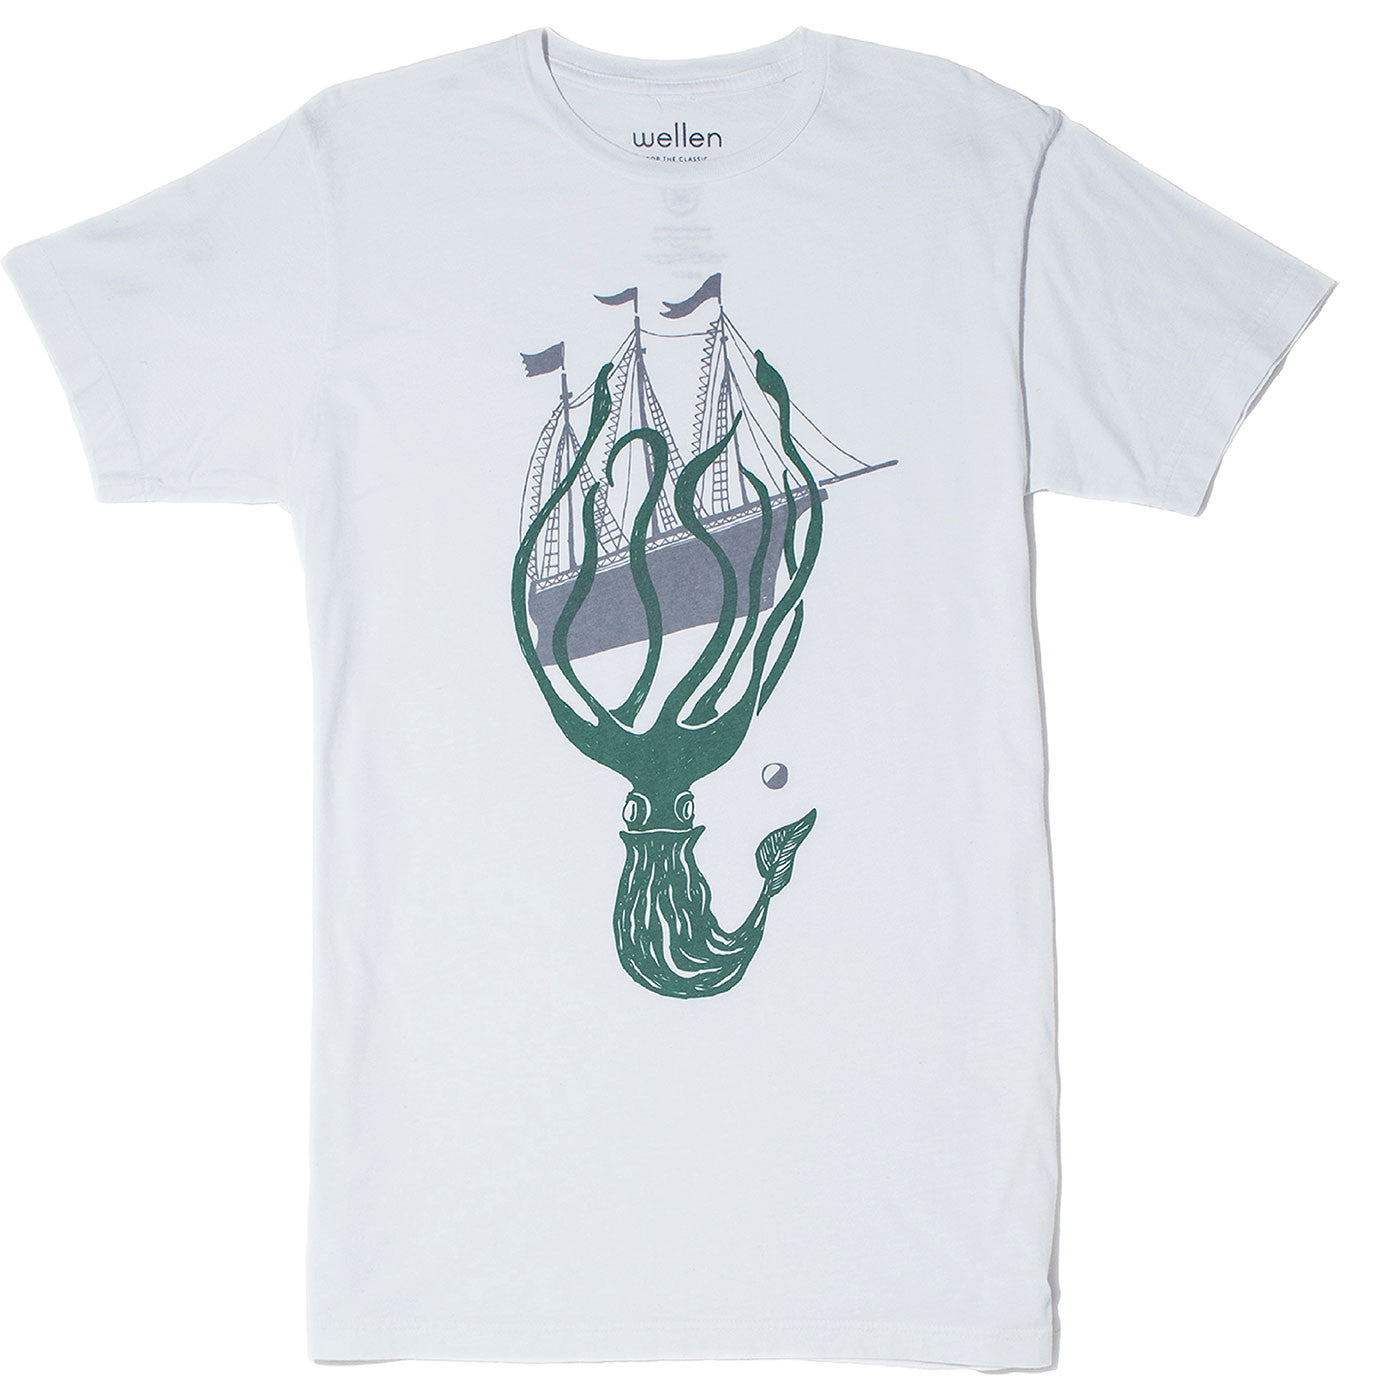 Wellen Surf Kraken T-Shirt (White)